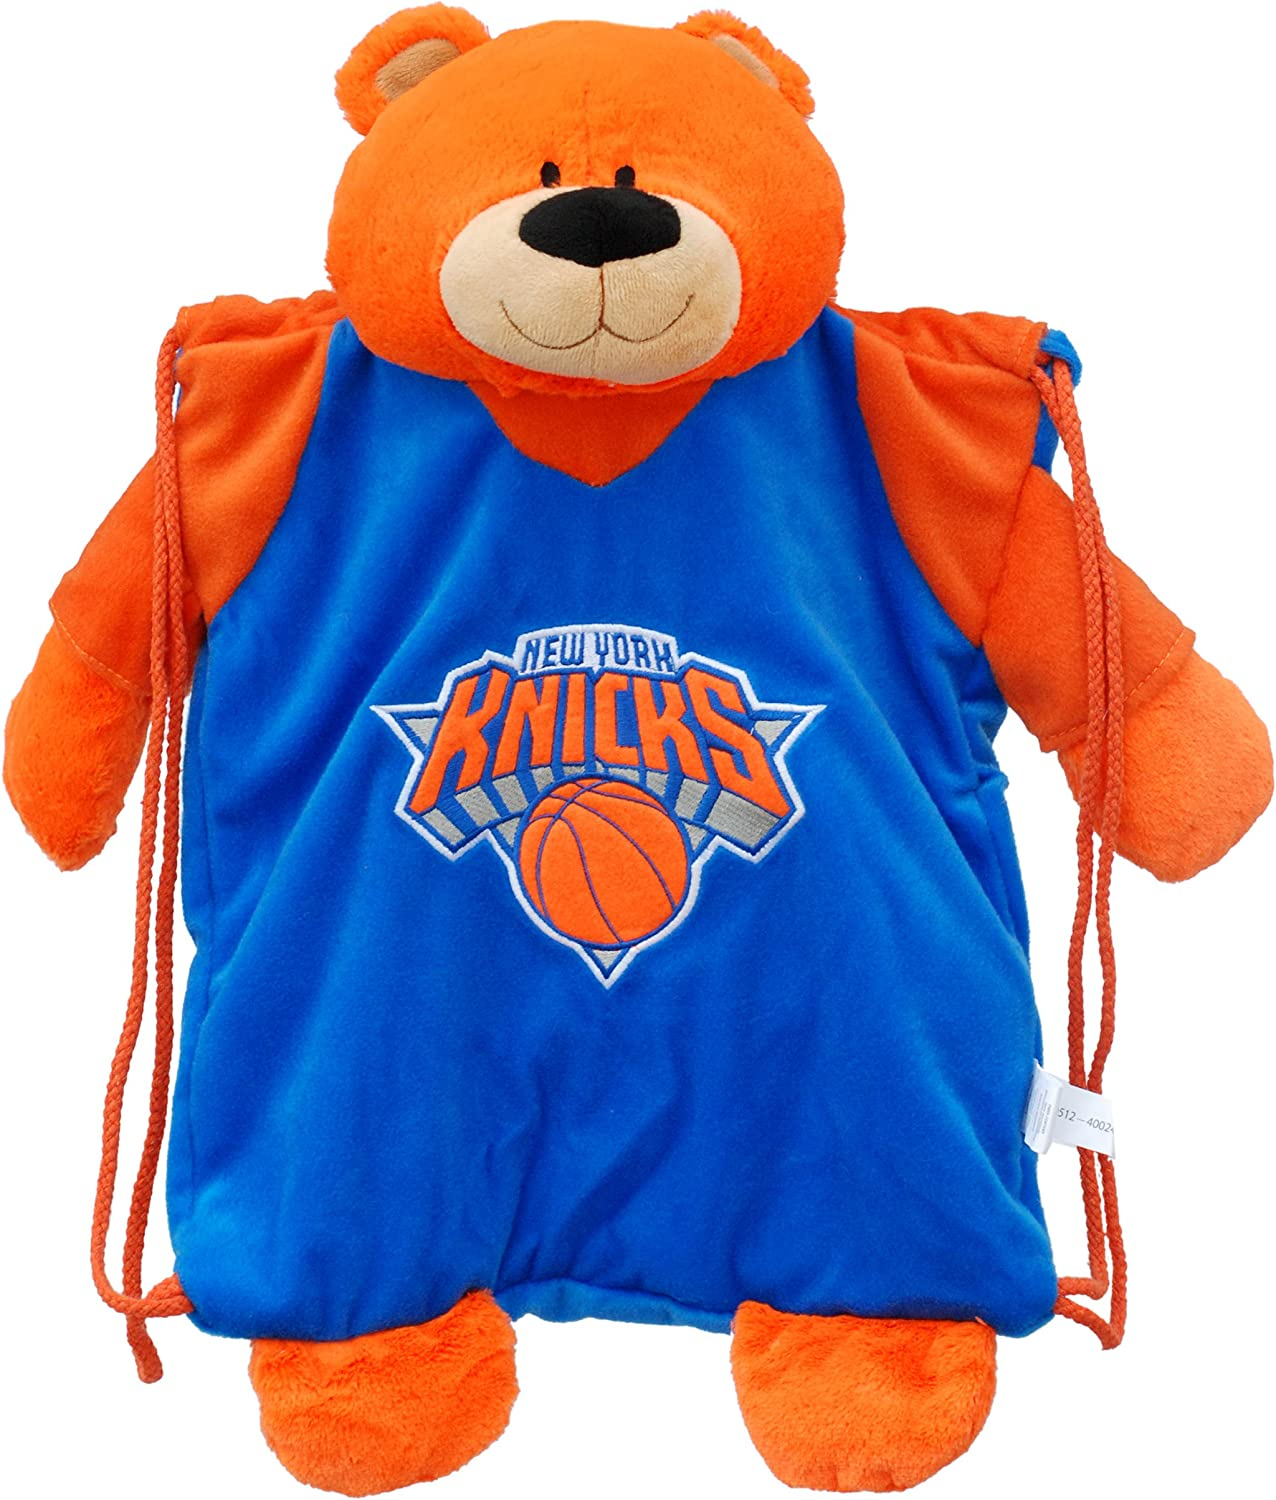 FOCO Max 73% OFF NBA Unisex Backpack Free Shipping Cheap Bargain Gift Pal